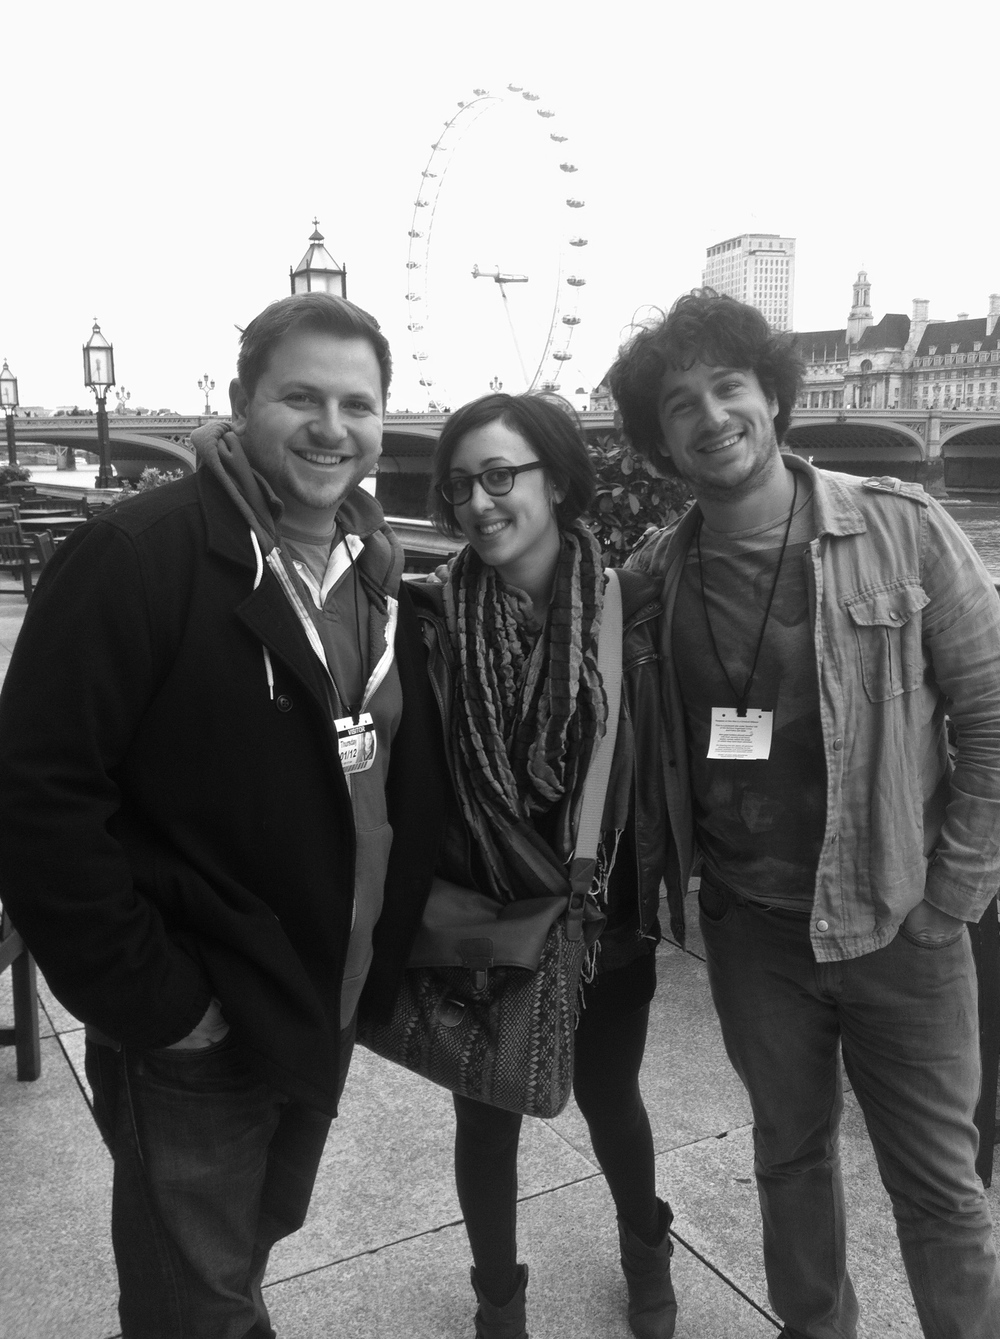 With Bess Rogers and Caleb Hawley, London, UK